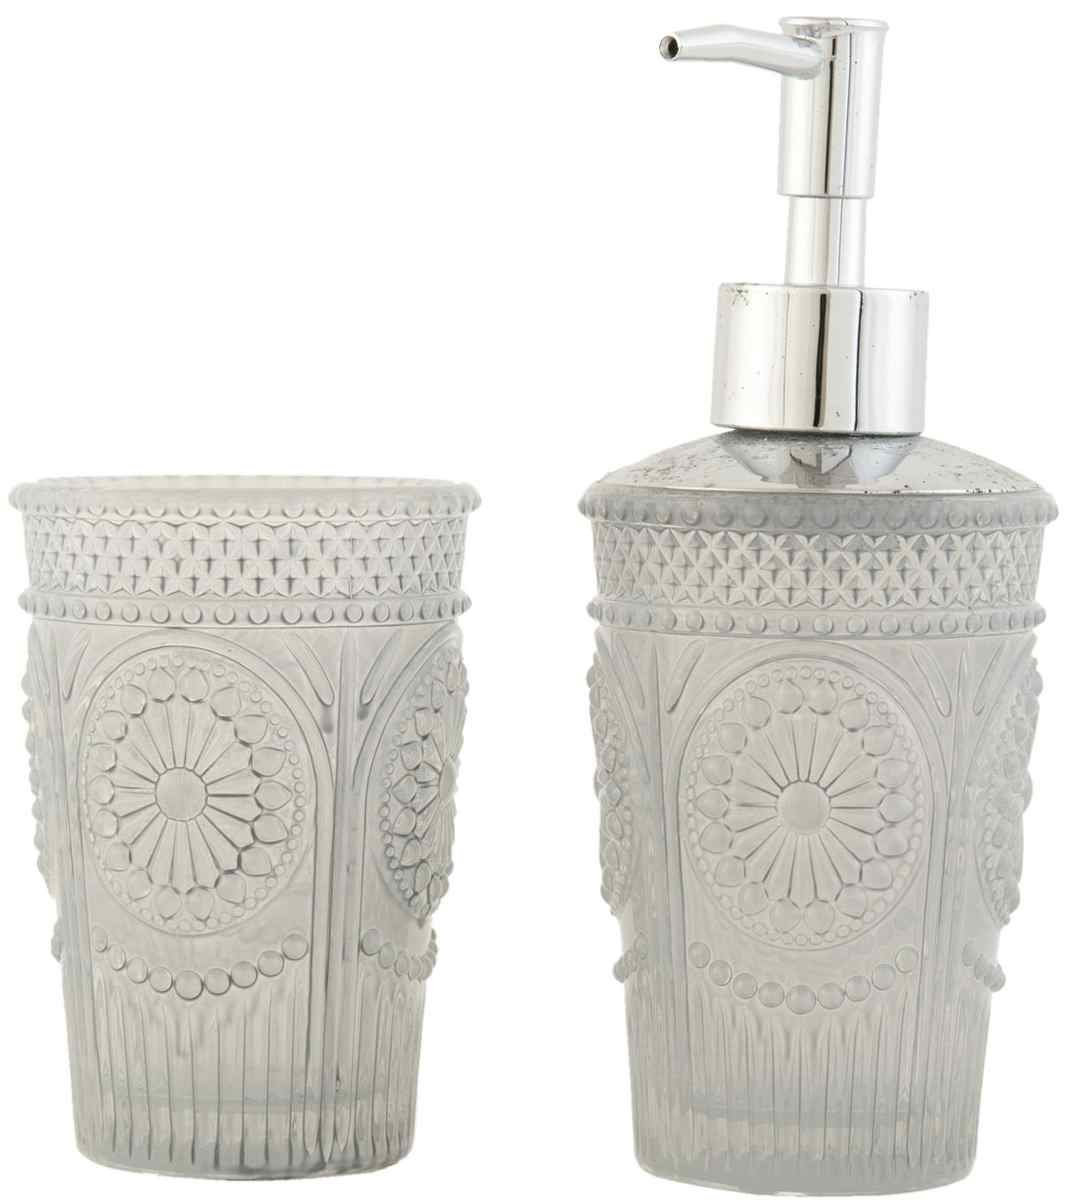 6GL1118 Clayre & Eef - Bathroom set - Soap dispenser - Toothbrush cup ca. 2.8 x 7.1 / 2.8 x 4.3 in Others